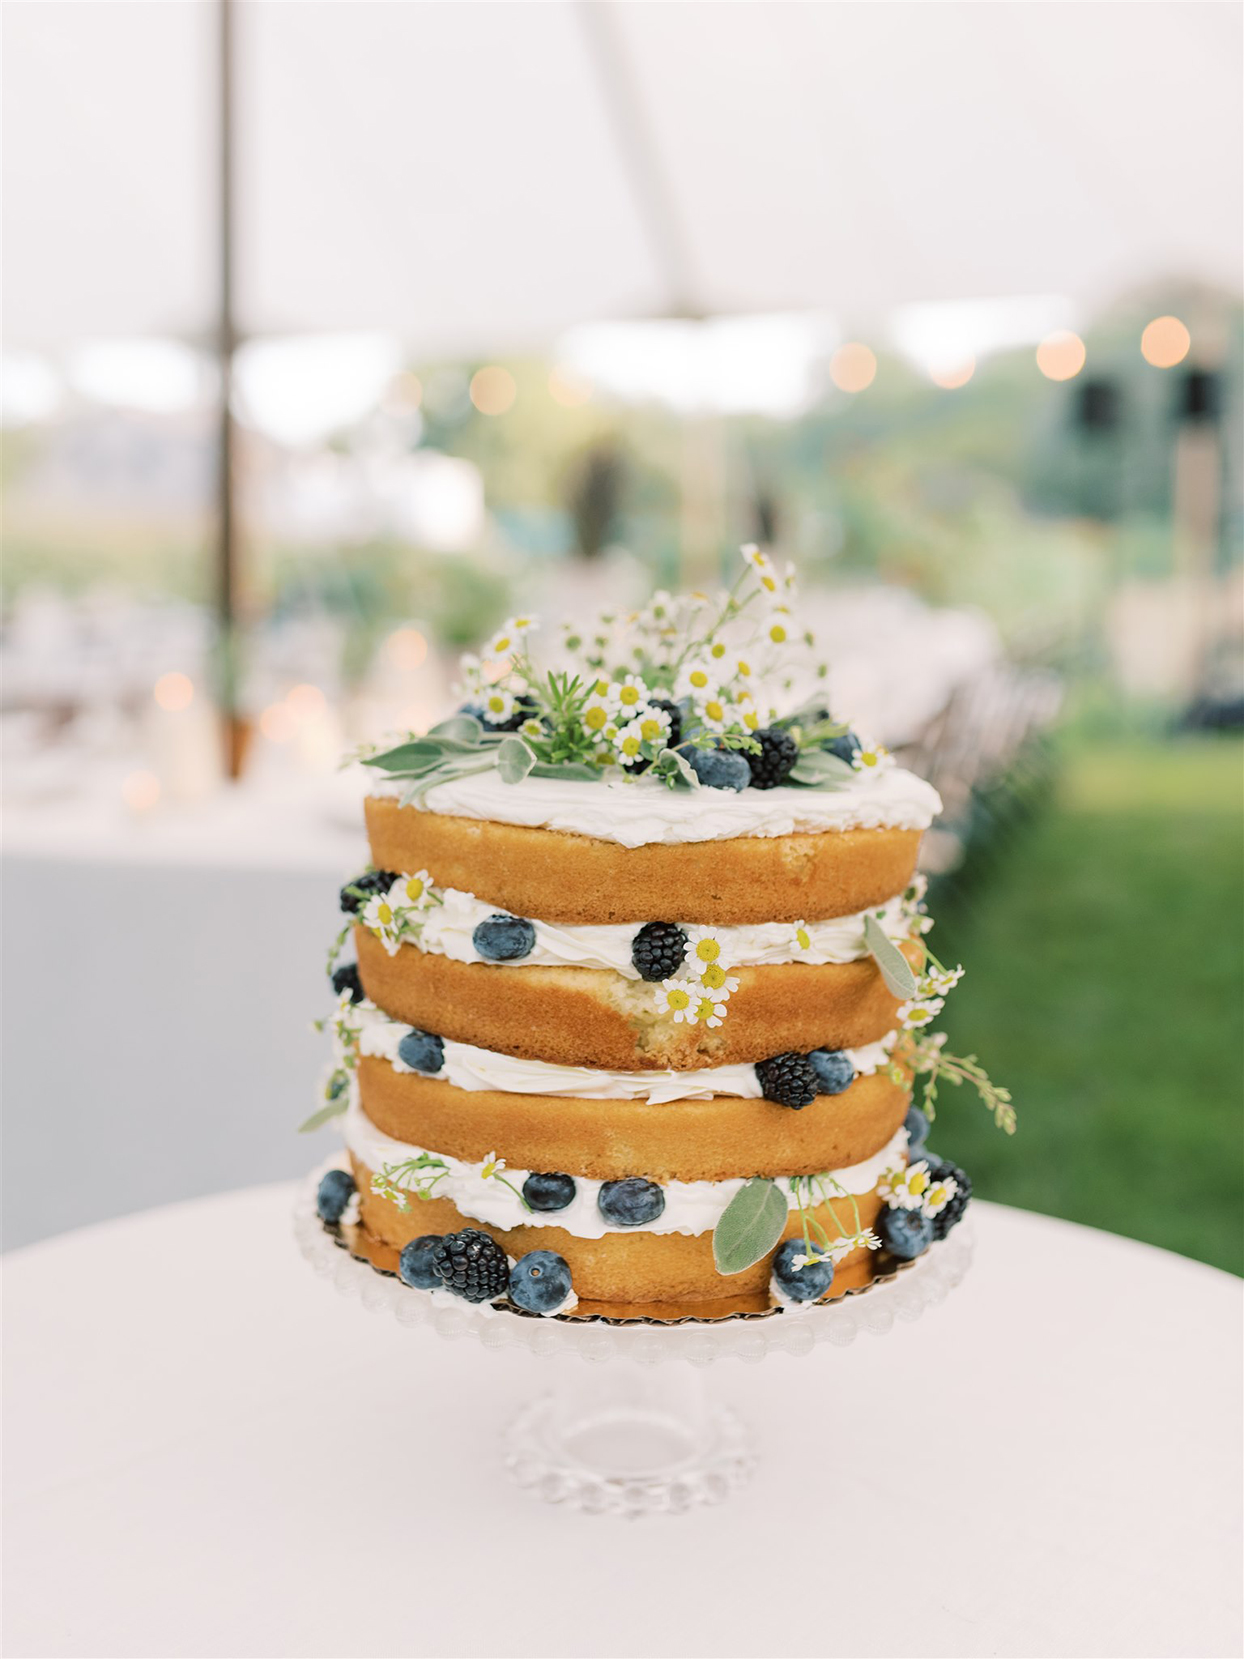 samantha cody wedding naked layer cake with blue and blackberries